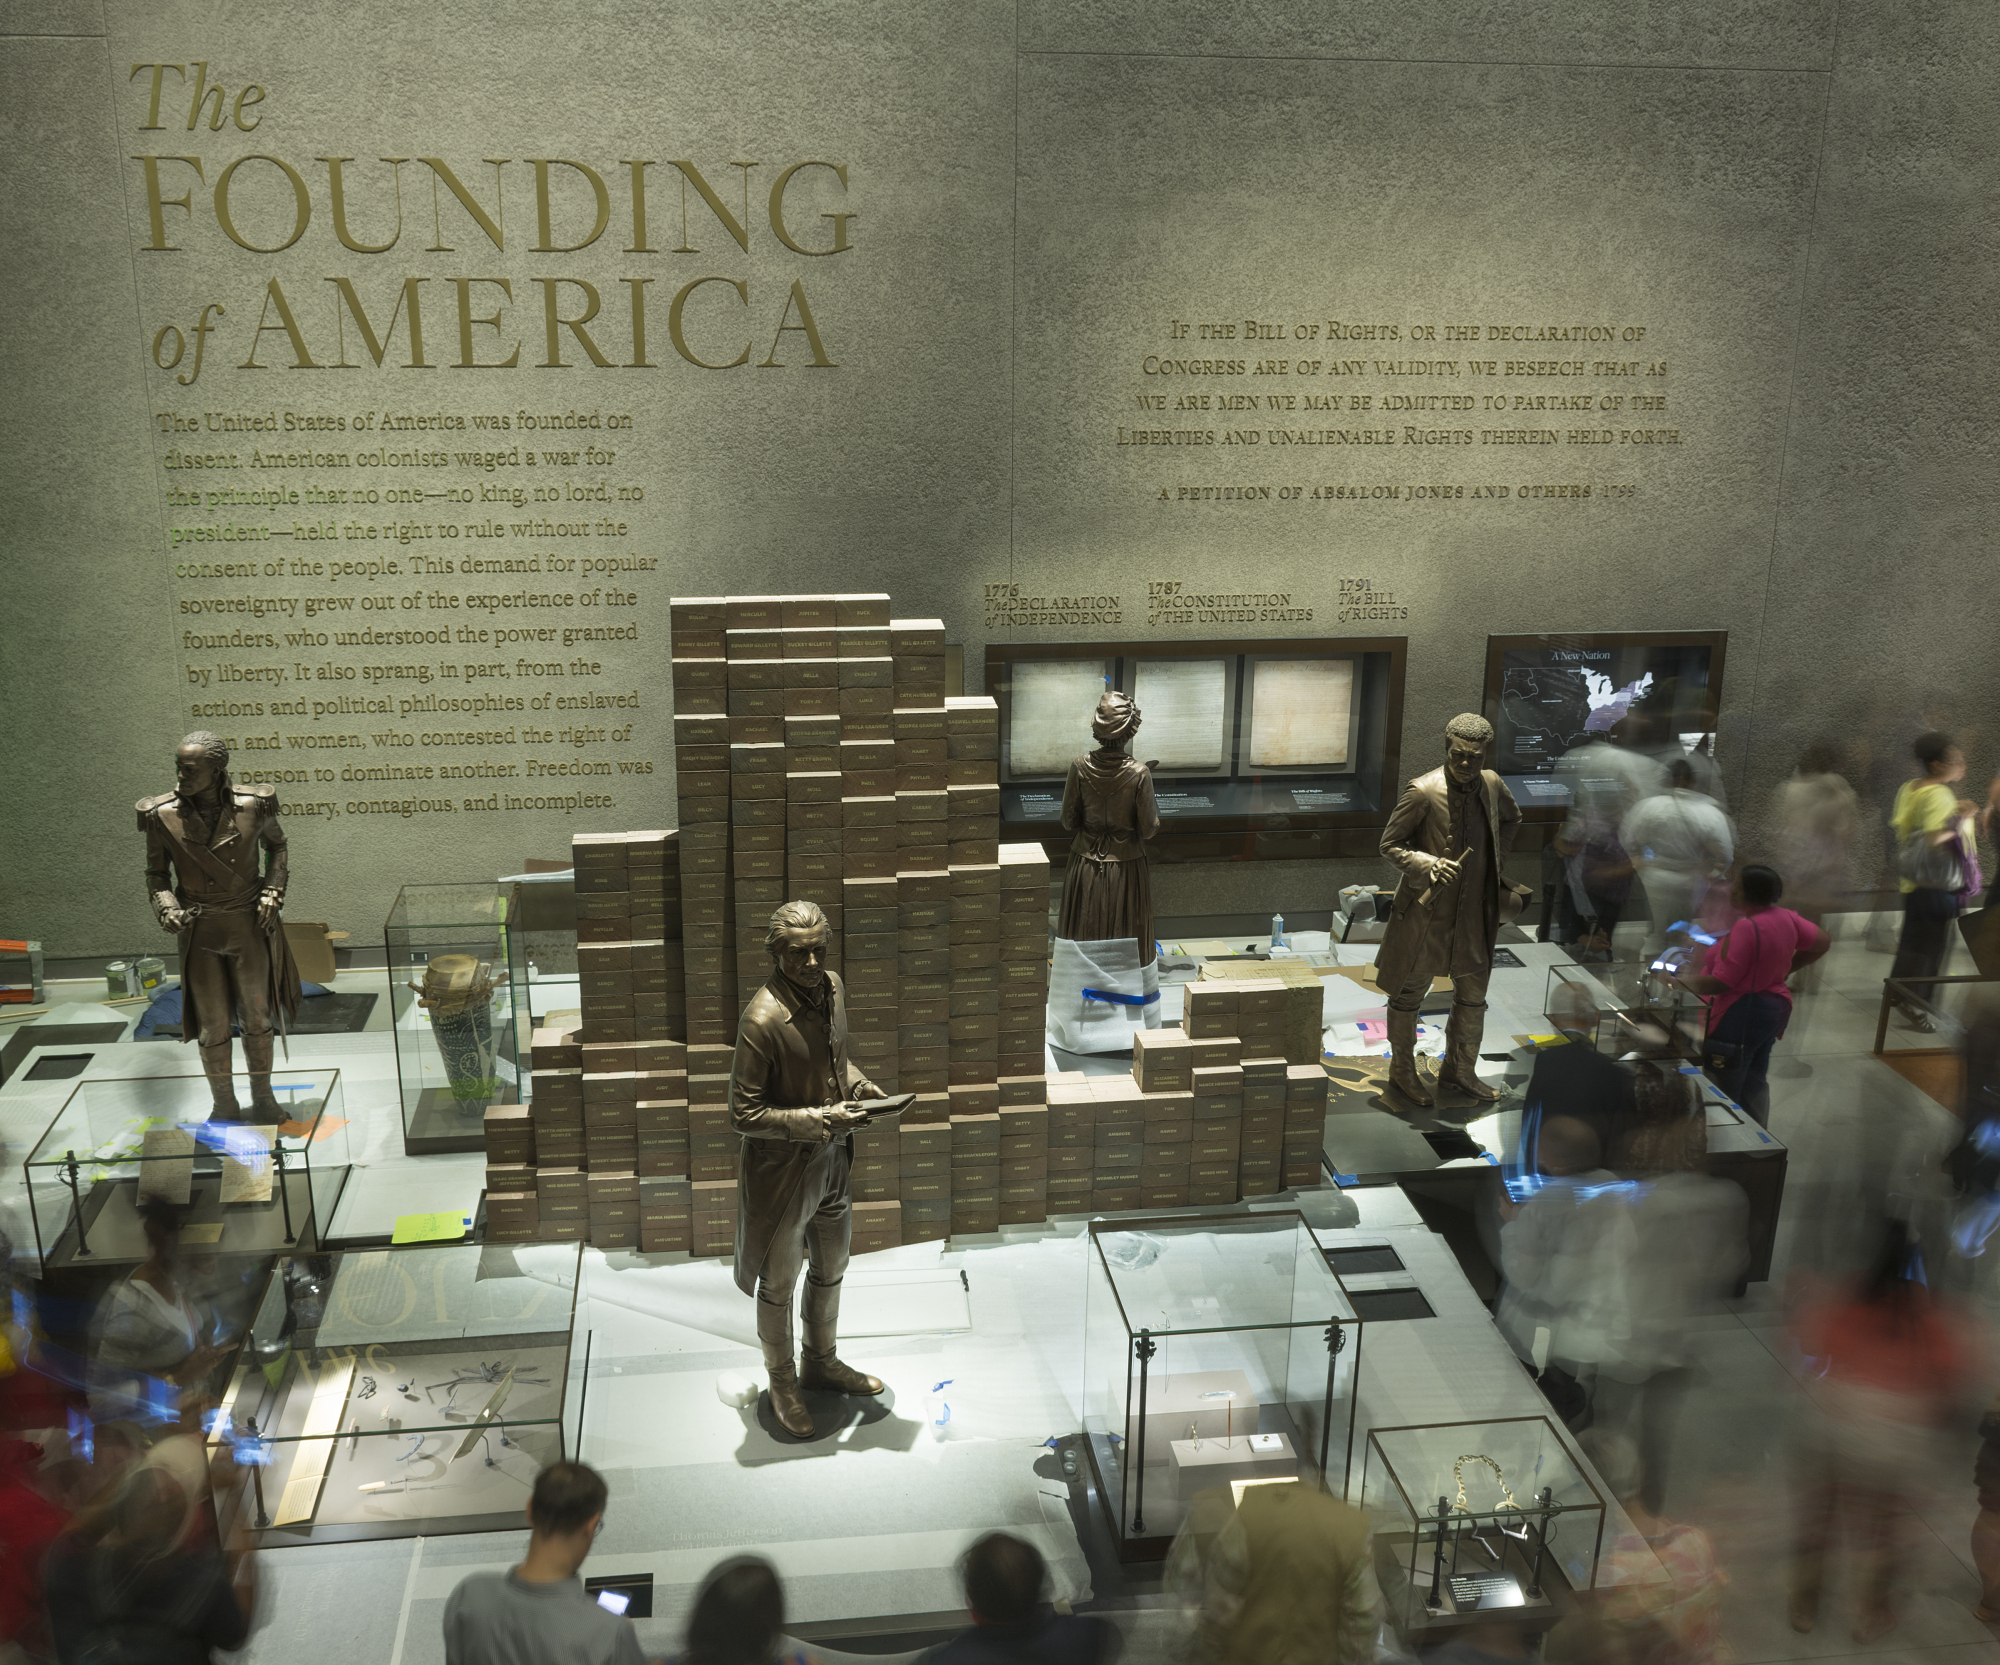 Slavery and Freedom Exhibit, NMAAHC